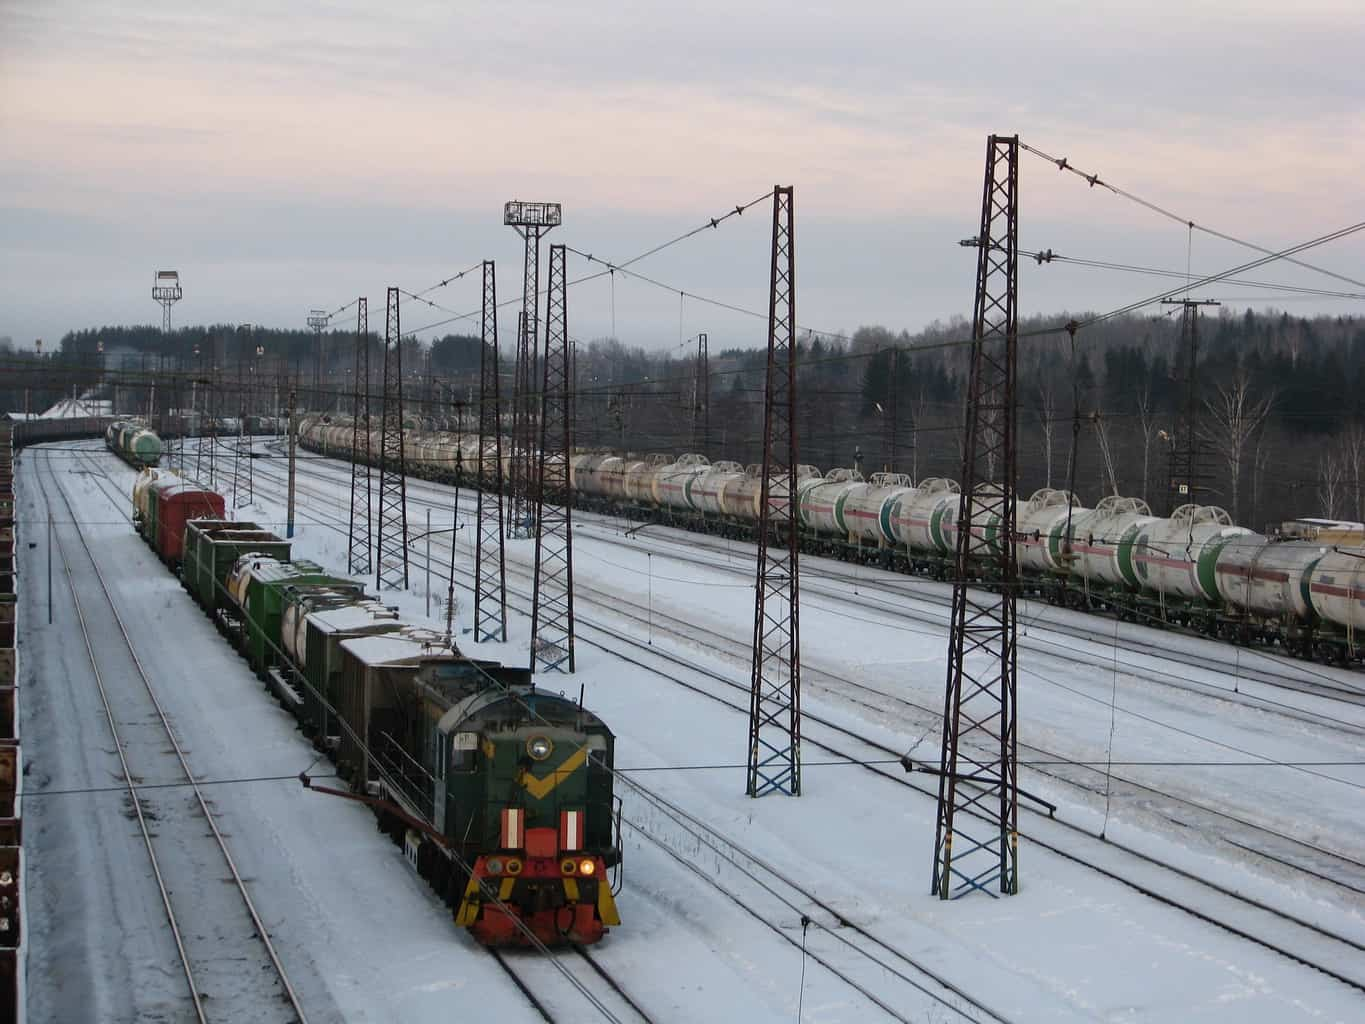 From Moscow to Vladivostok: The longest train ride in the world